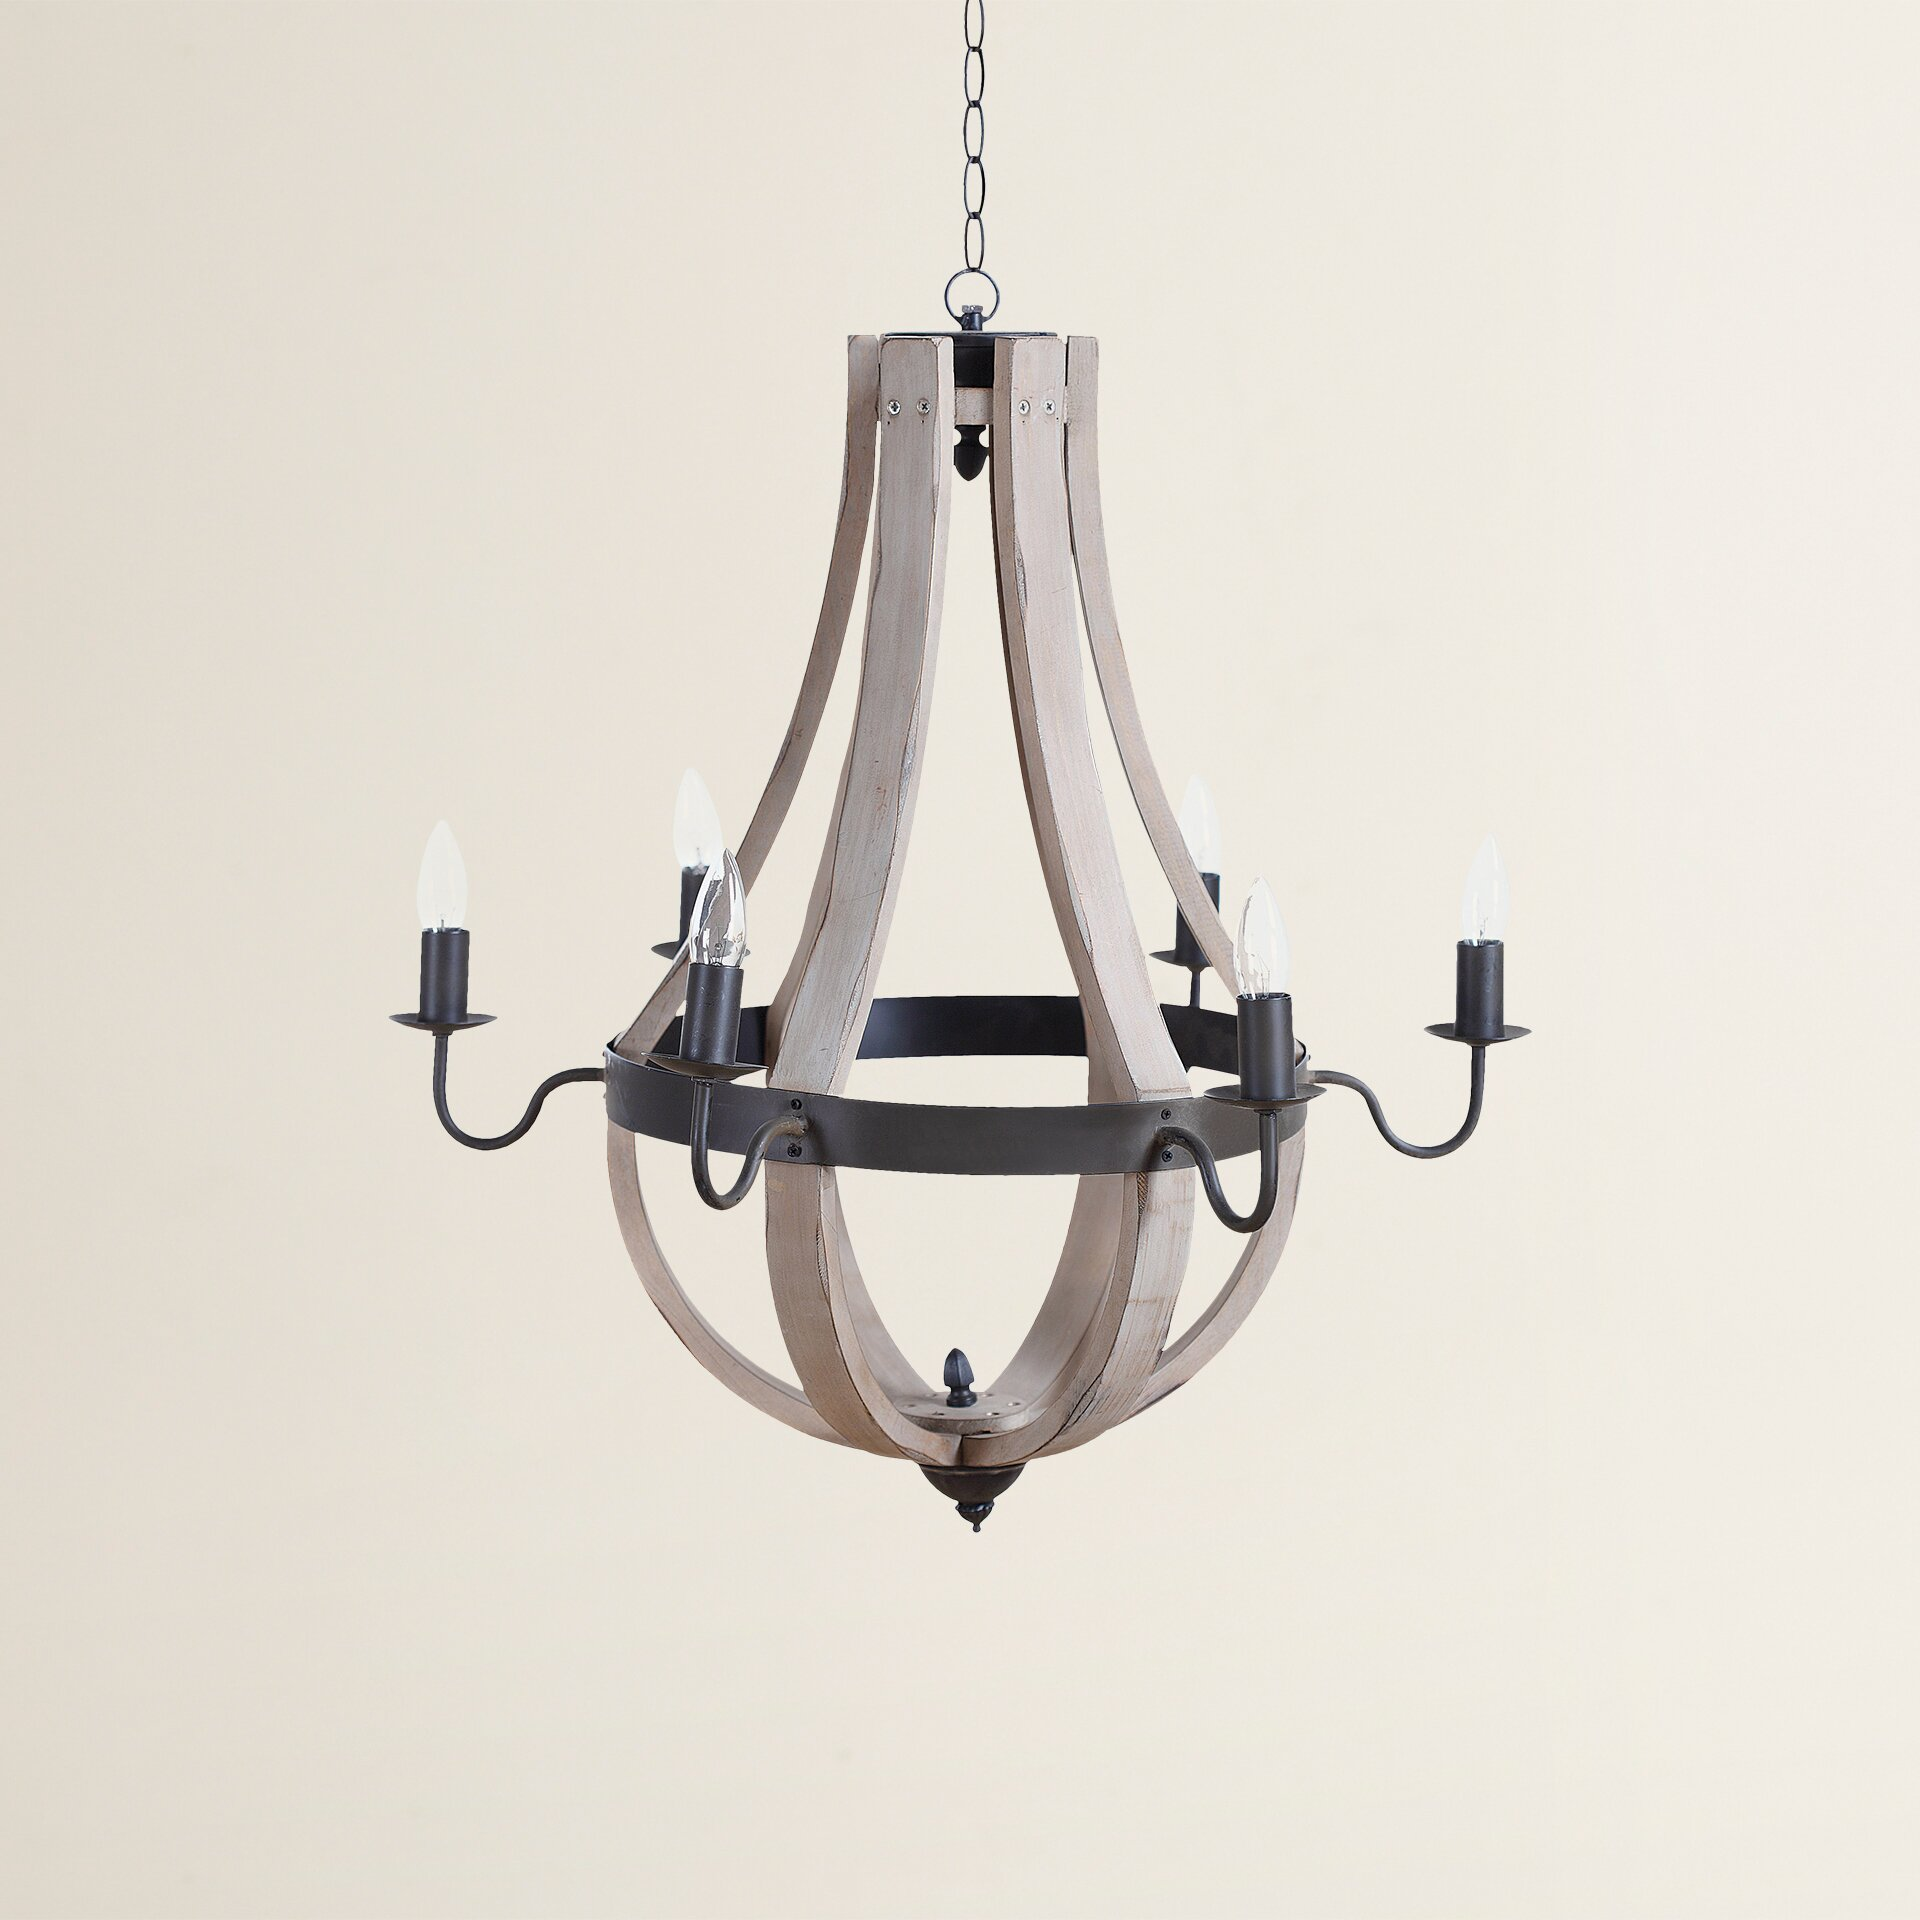 Wayfair Chandelier: August Grove Calhoun 6 Light Chandelier & Reviews